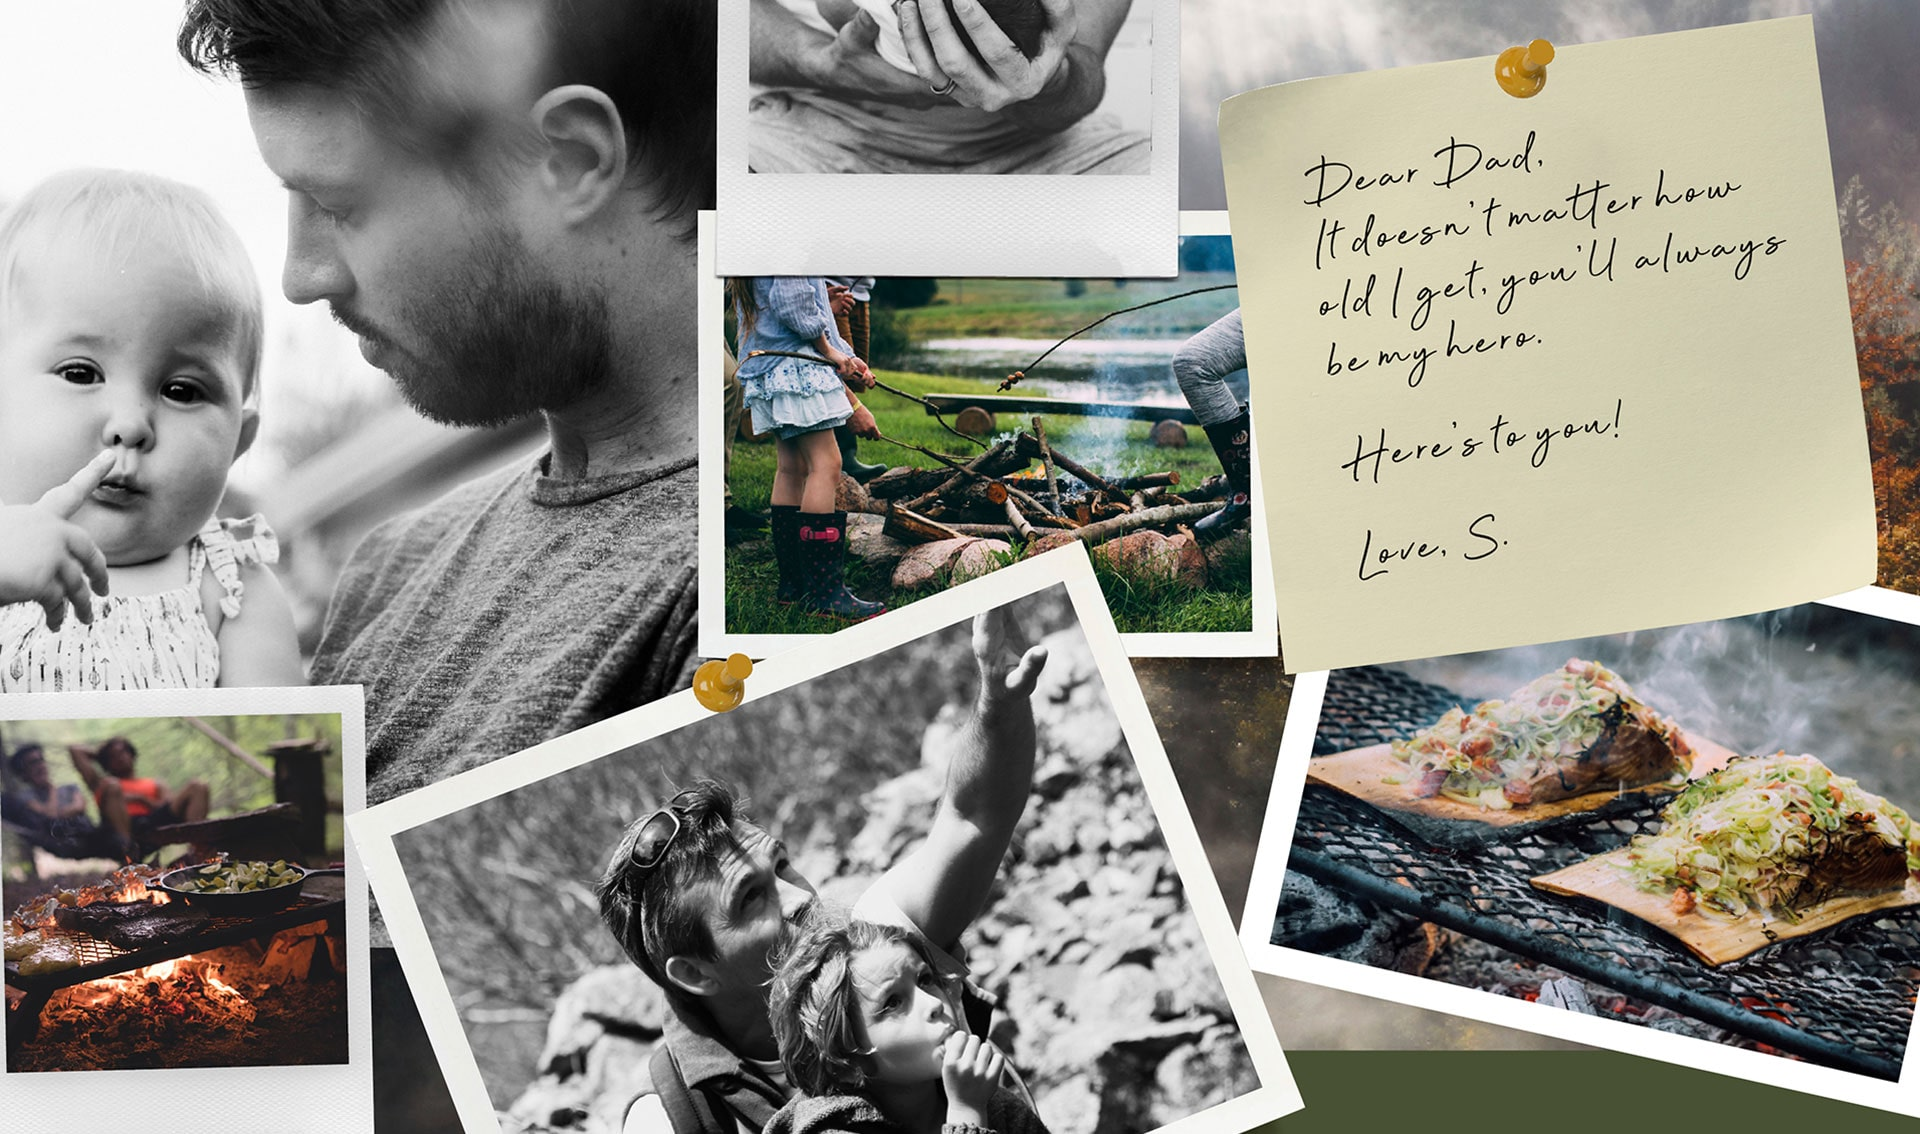 A Father's Day collage of photographs featuring fathers with their children and a handwritten note to dad.